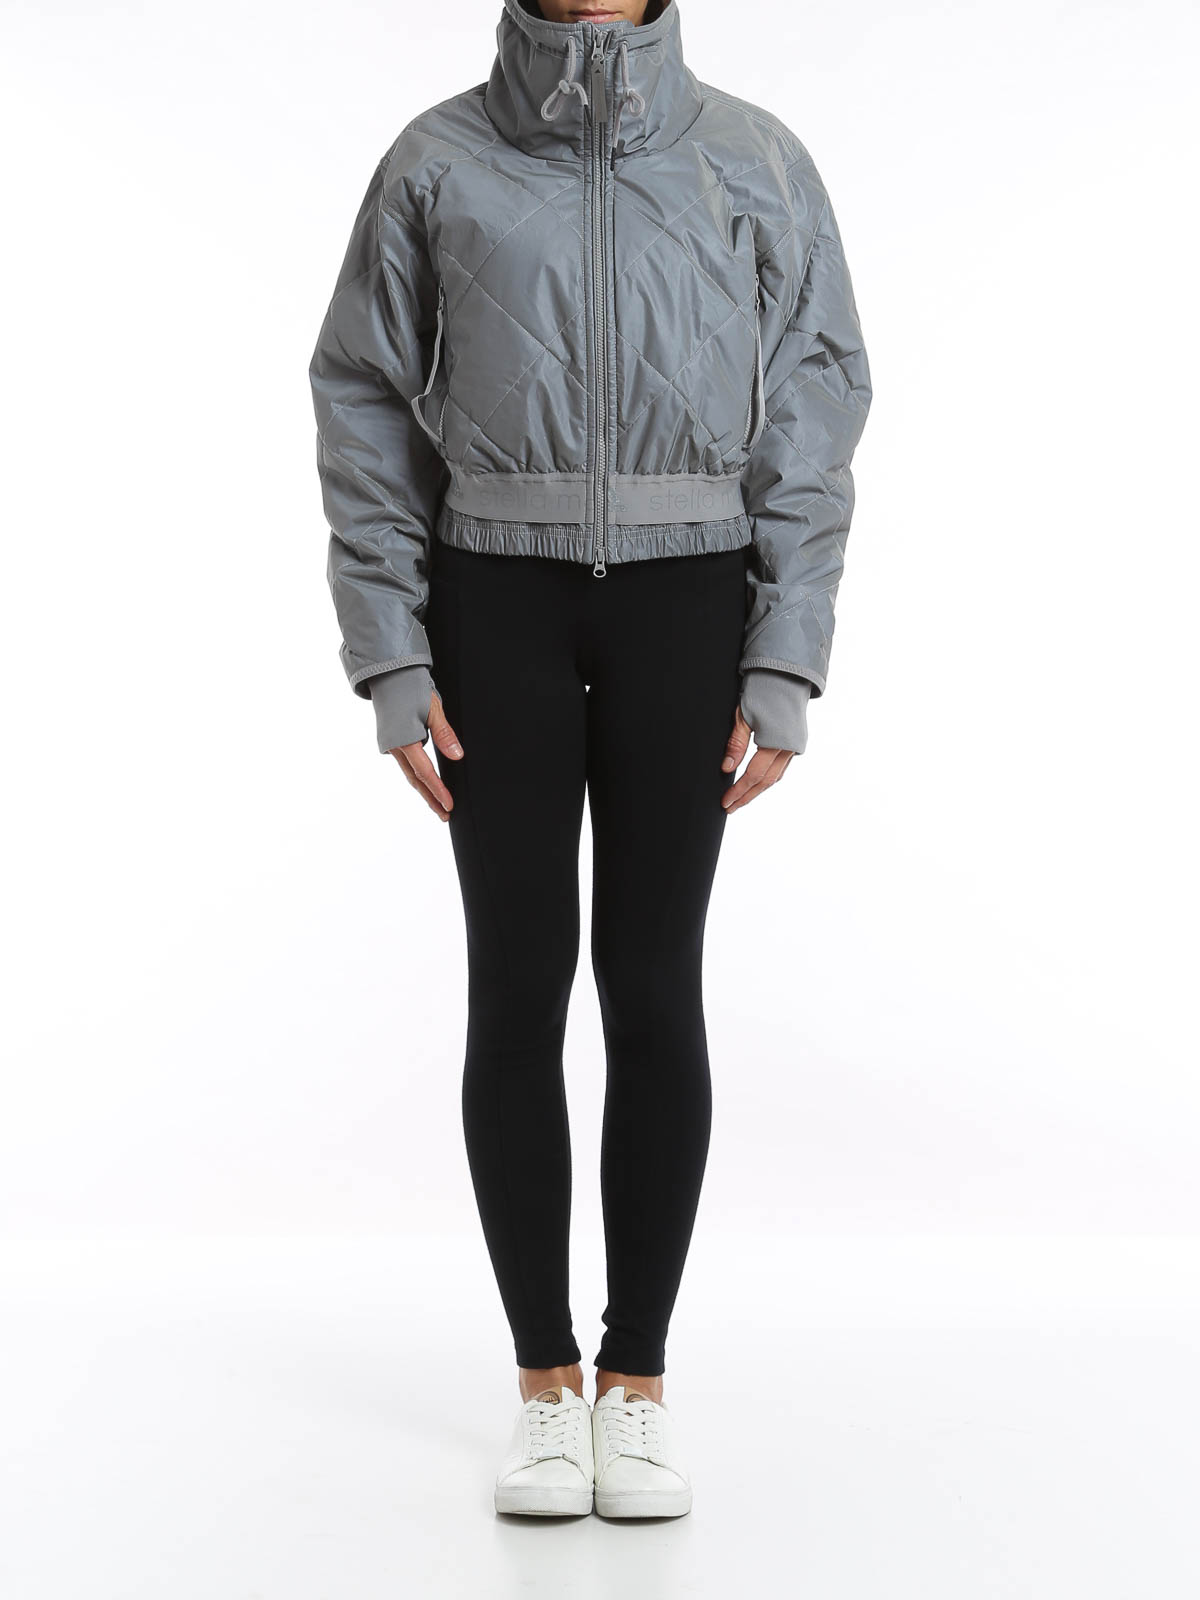 stella mccartney jacket adidas